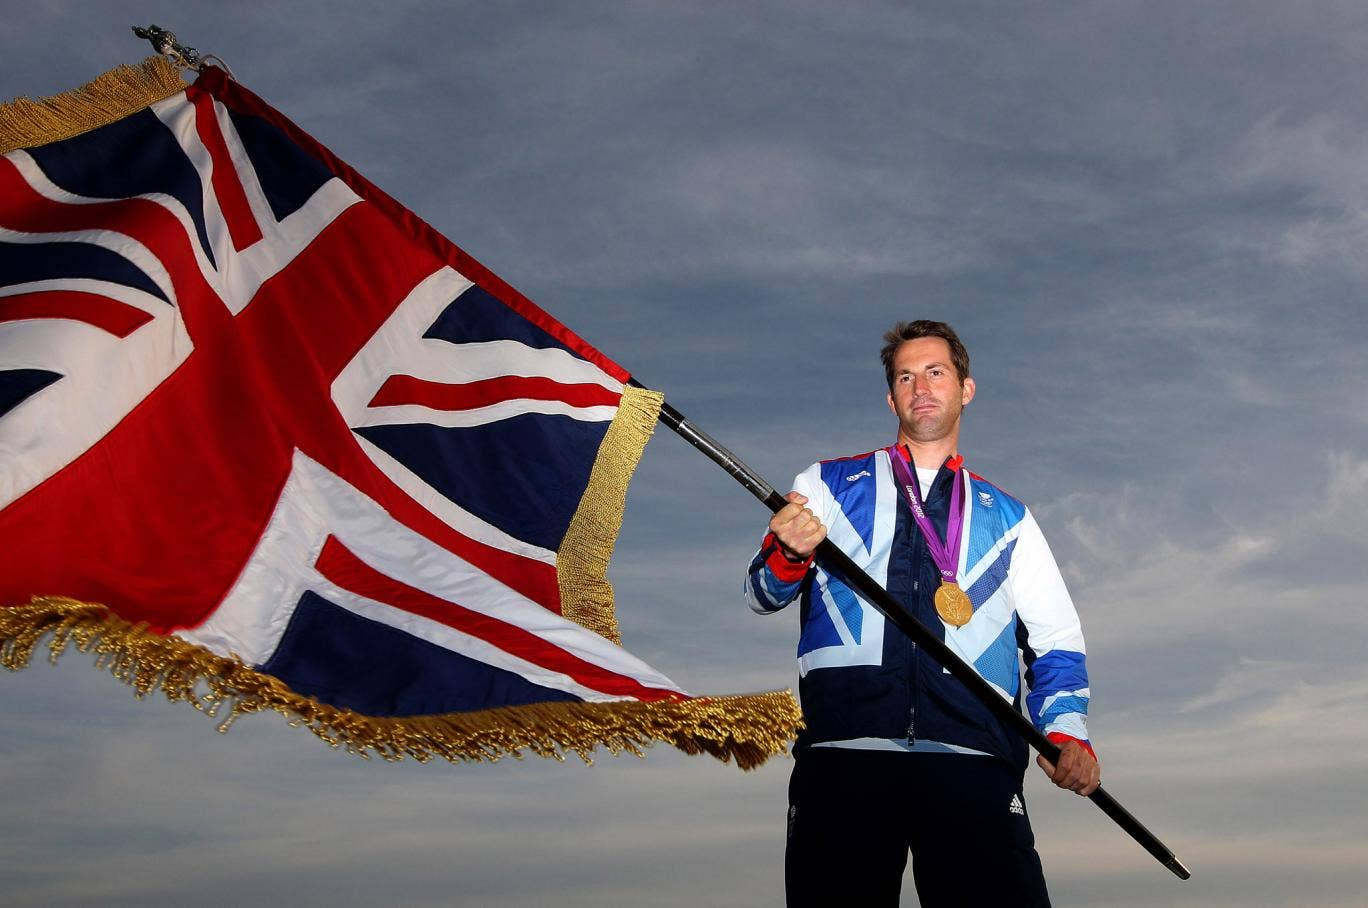 Ainslie was Team GB's flag bearer at the London 2012 closing ceremony